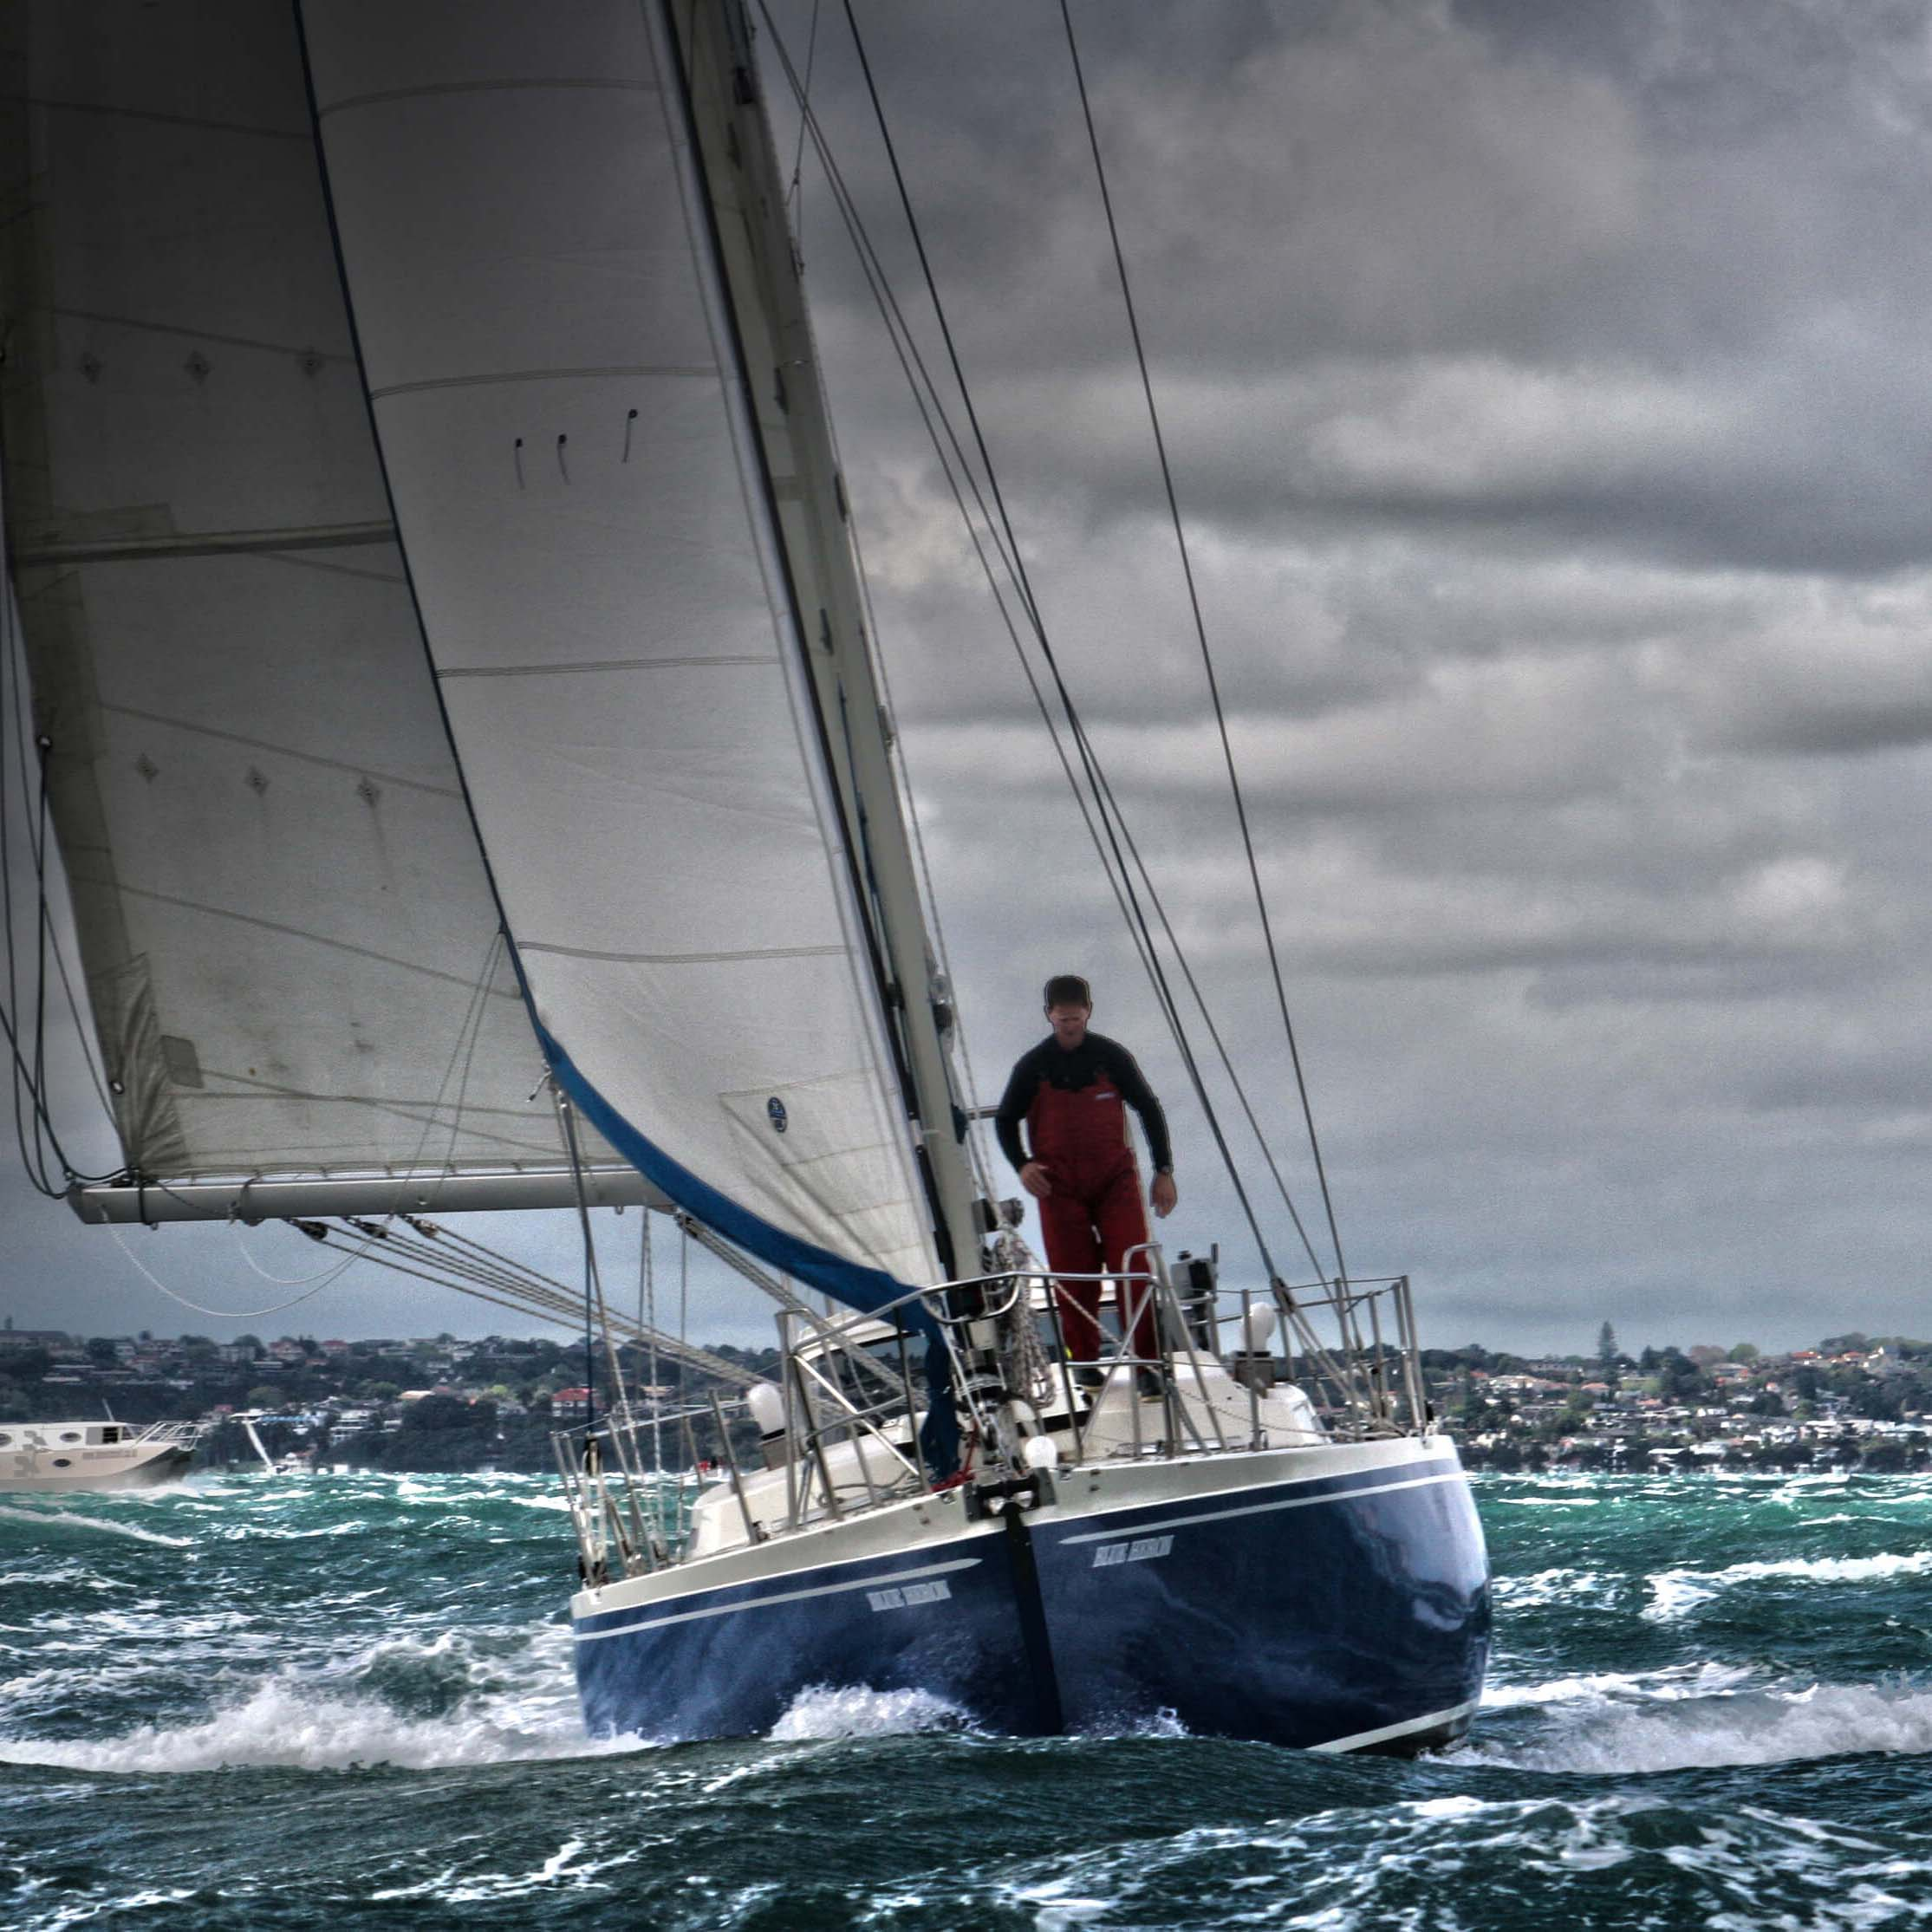 Yacht insured with PIC Marine and Boat Insurance